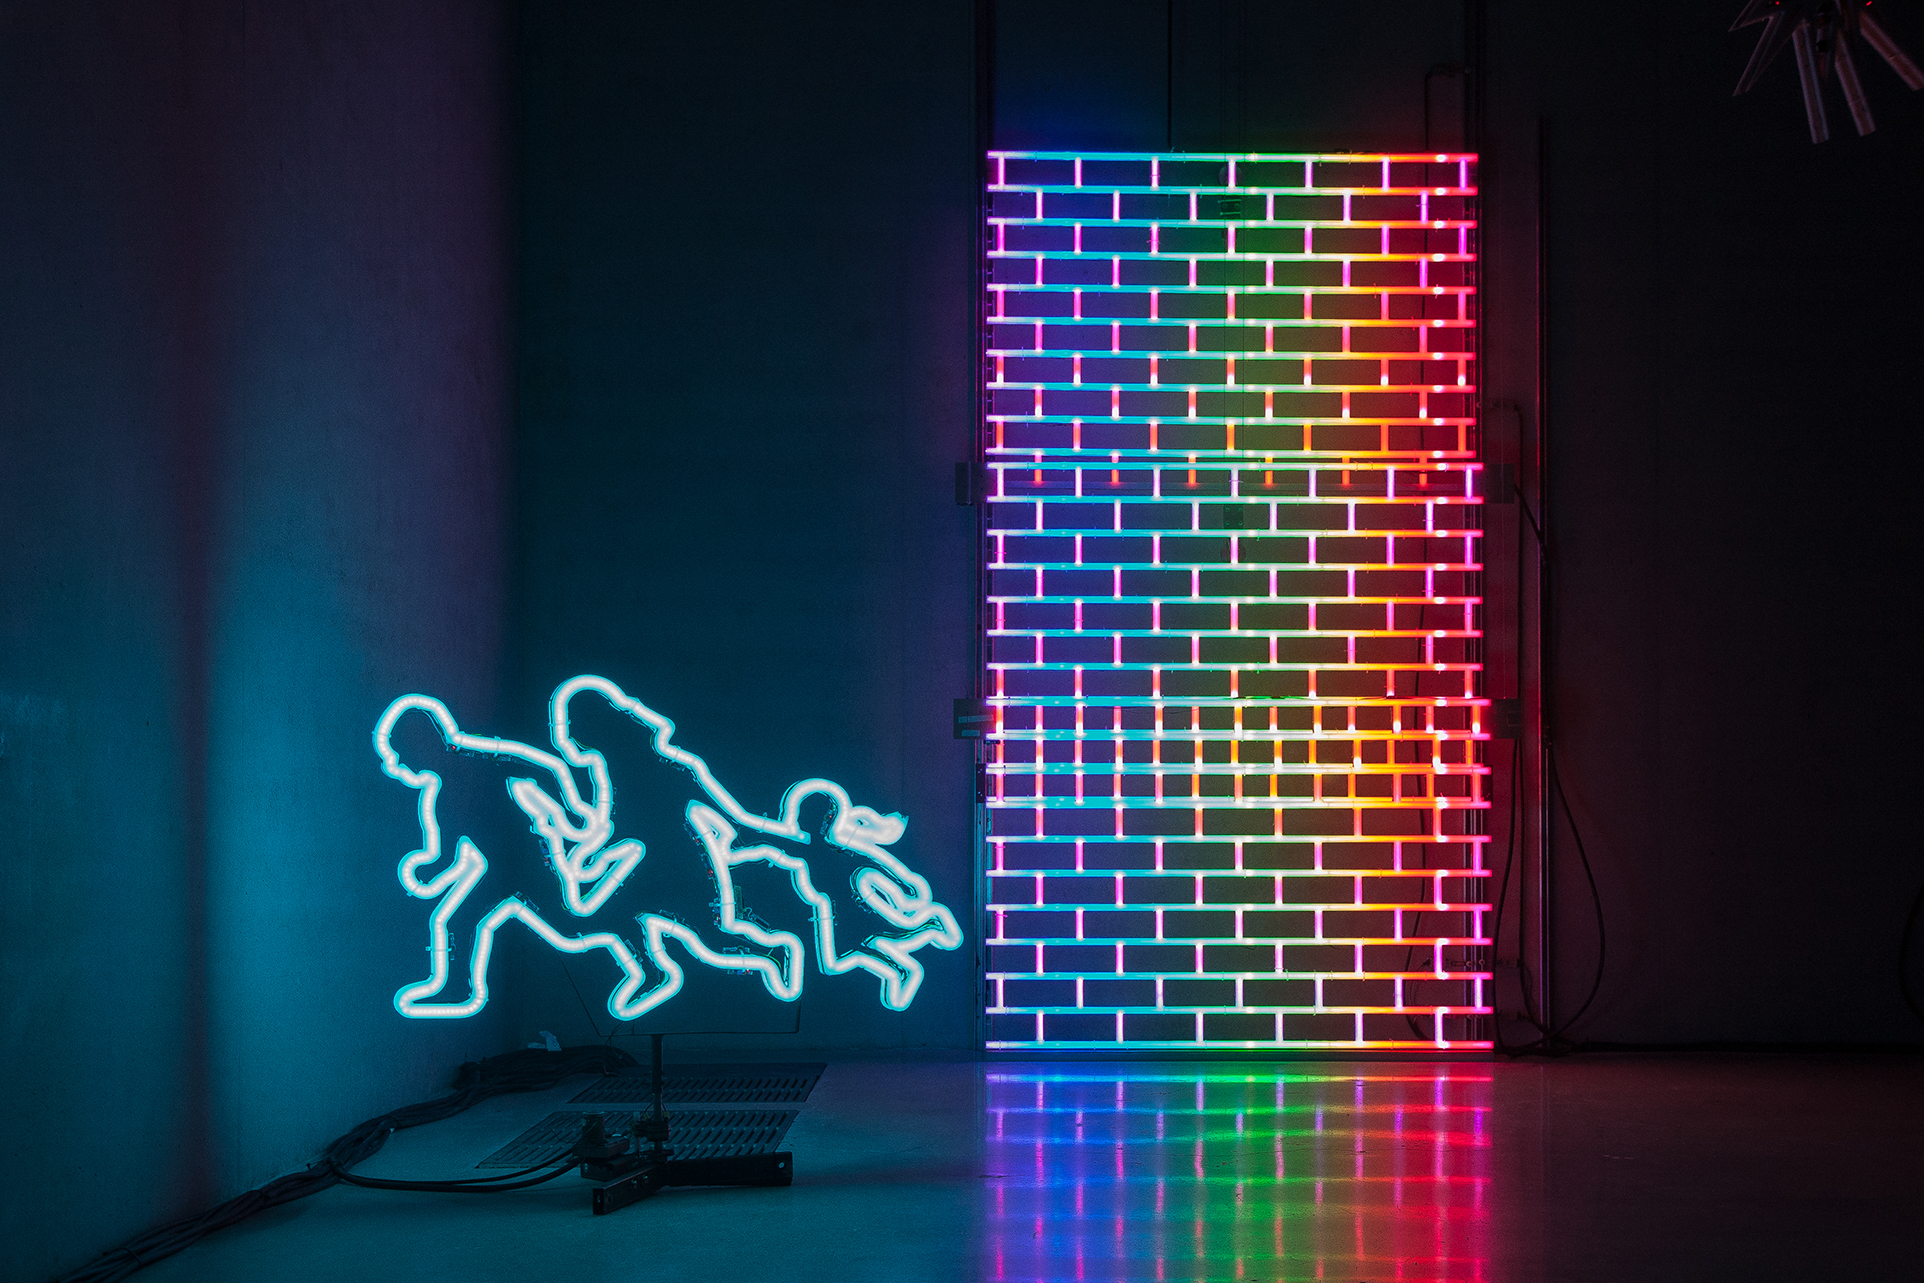 2018 Dimensions variable. Motors, LEDs, microcontroller, and radio module.  - Marc Straus Gallery